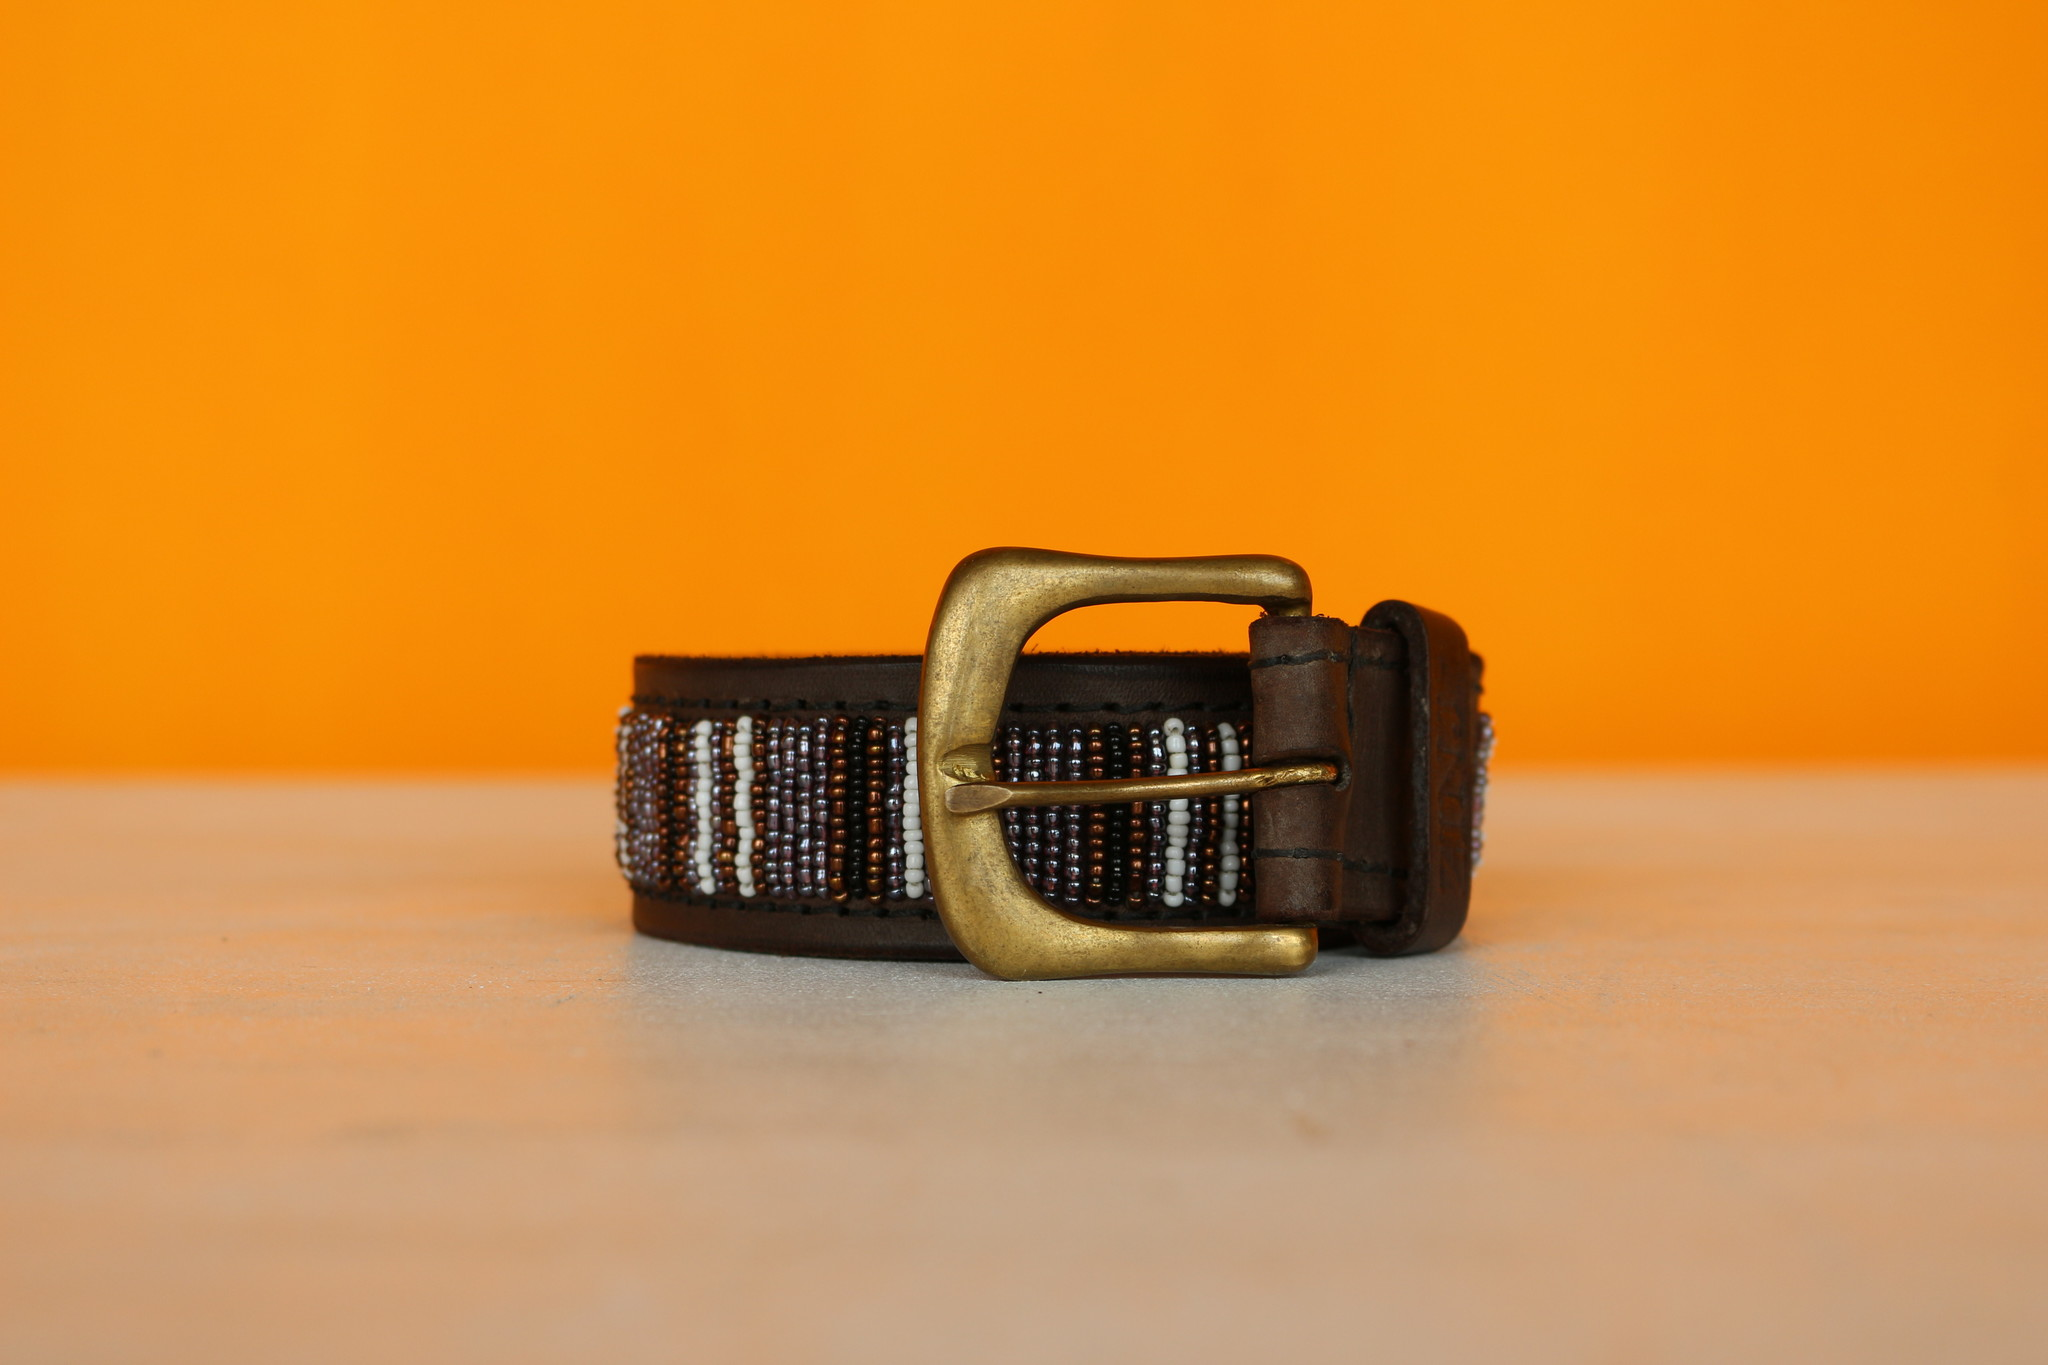 HANDMADE IN KENYA BLACK NILE BELT